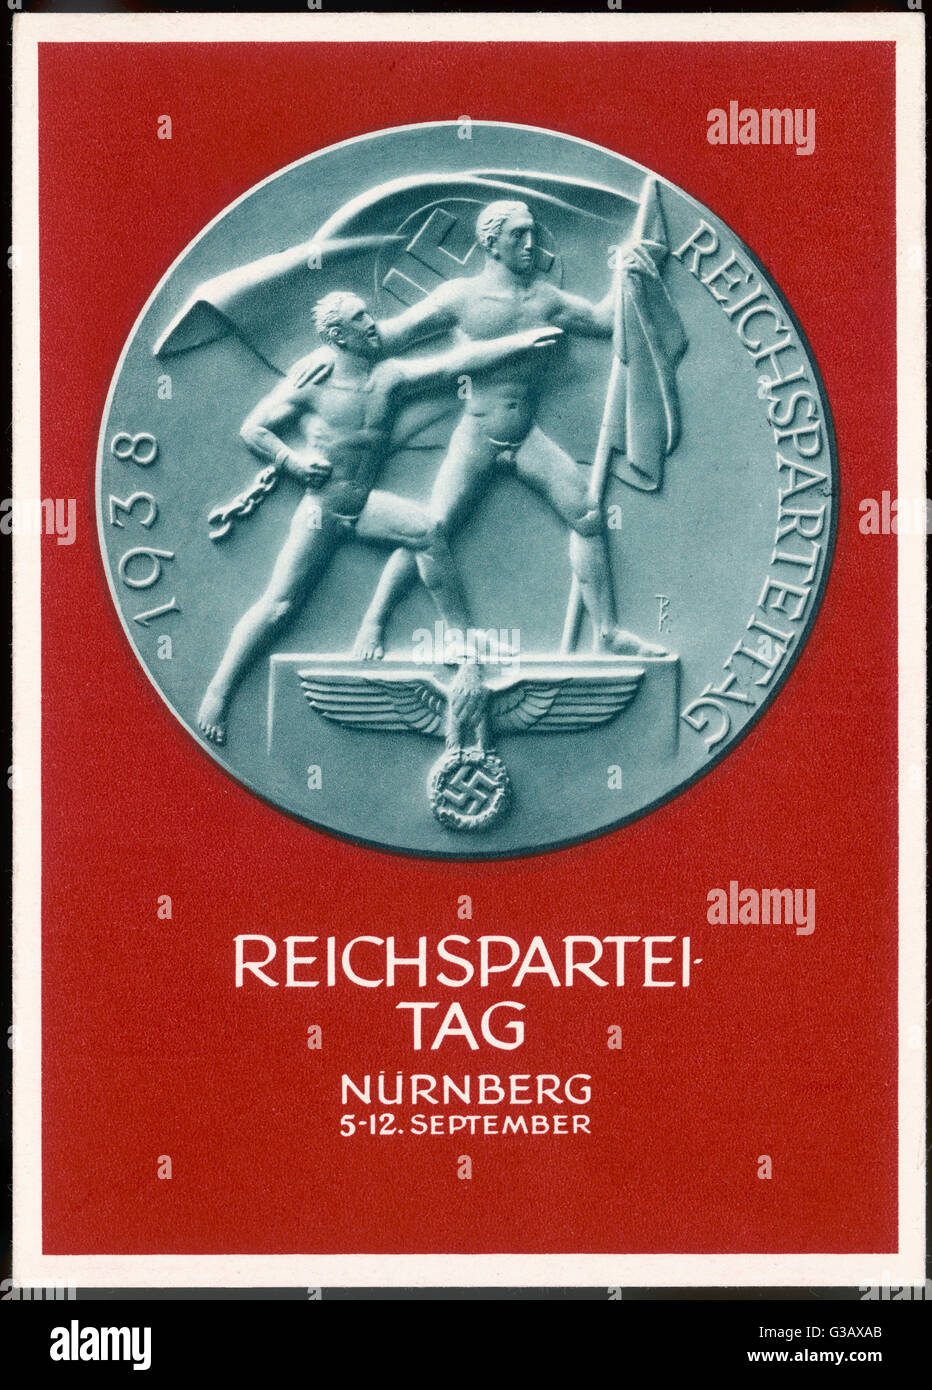 Medal to celebrate  Reichsparteitag, Nuremberg.        Date: 5-12 September 1938 - Stock Image